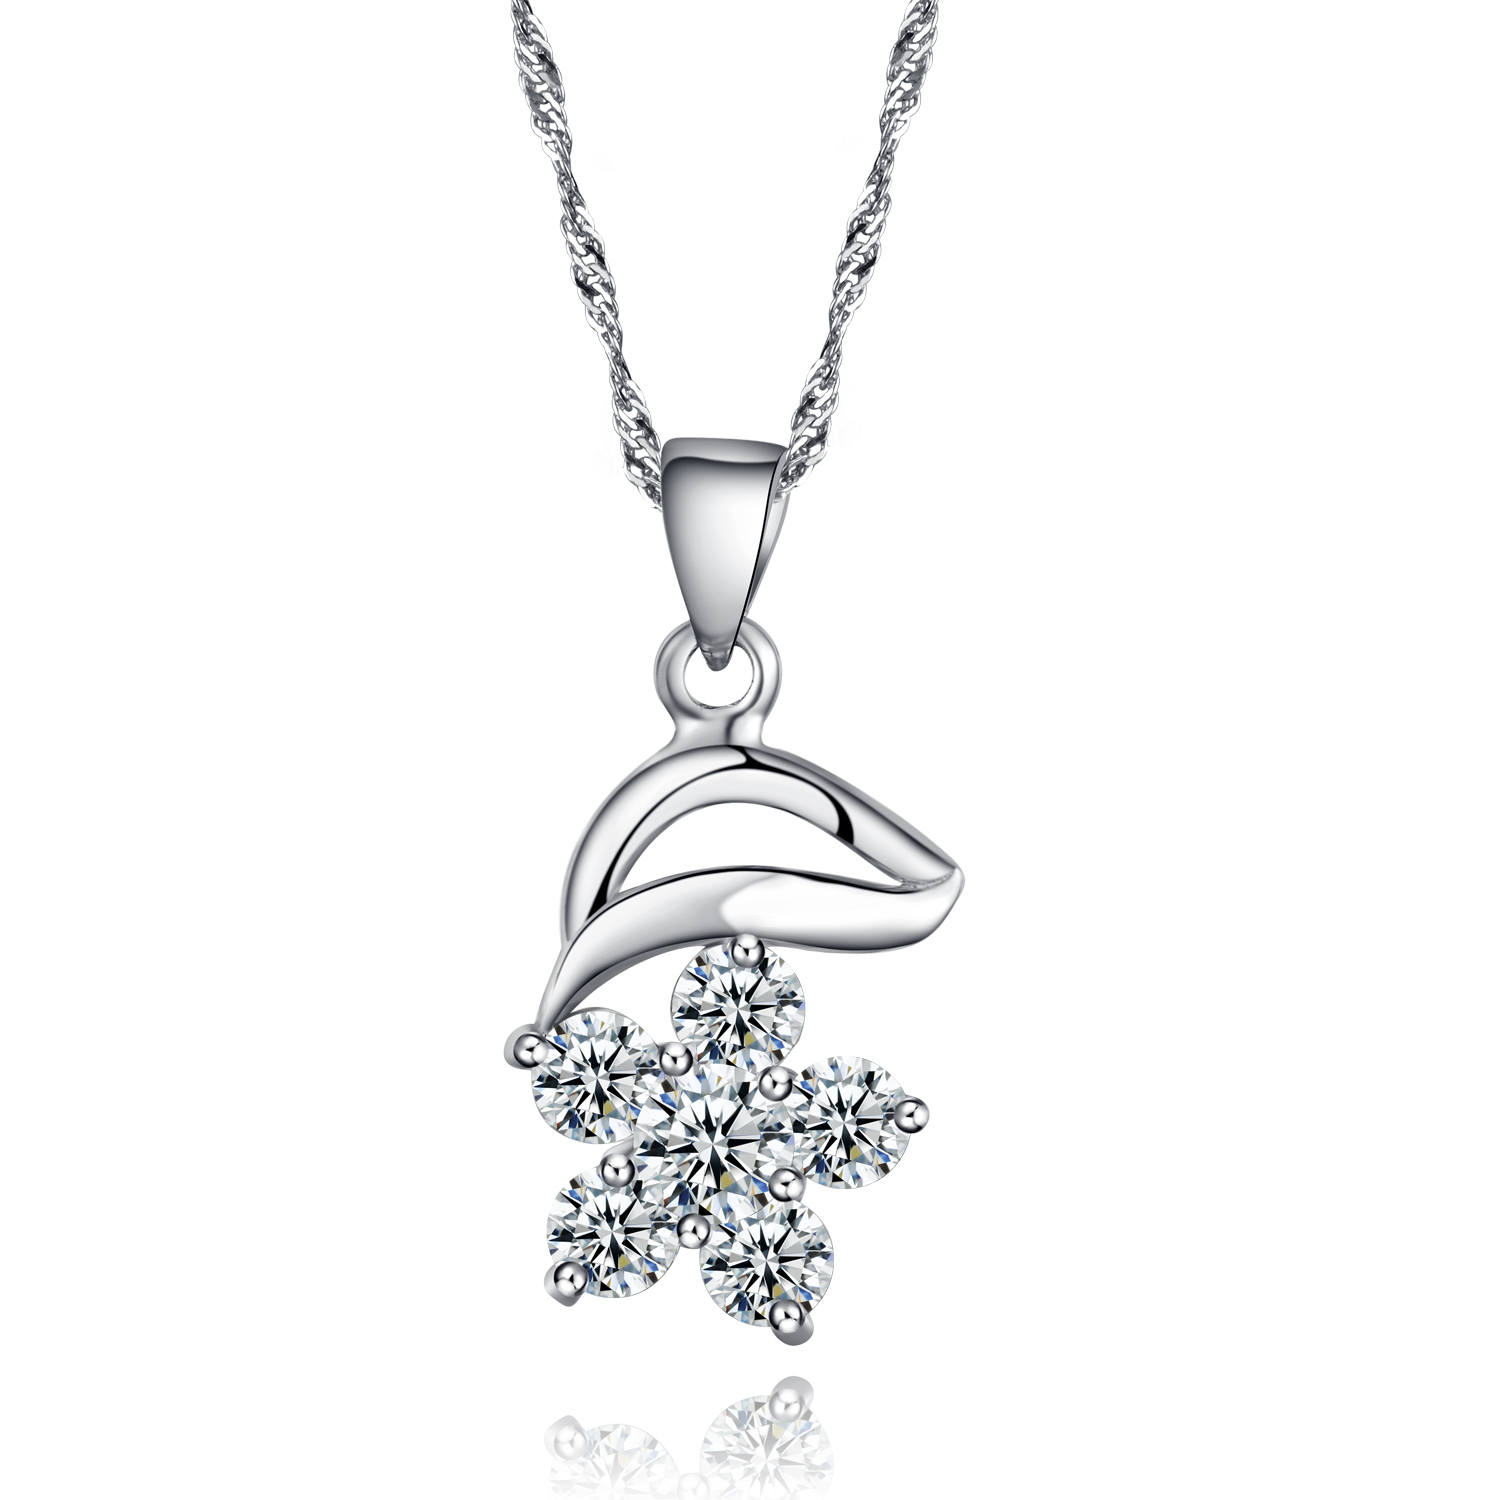 on 18 chain Sterling silver Flower Pendant